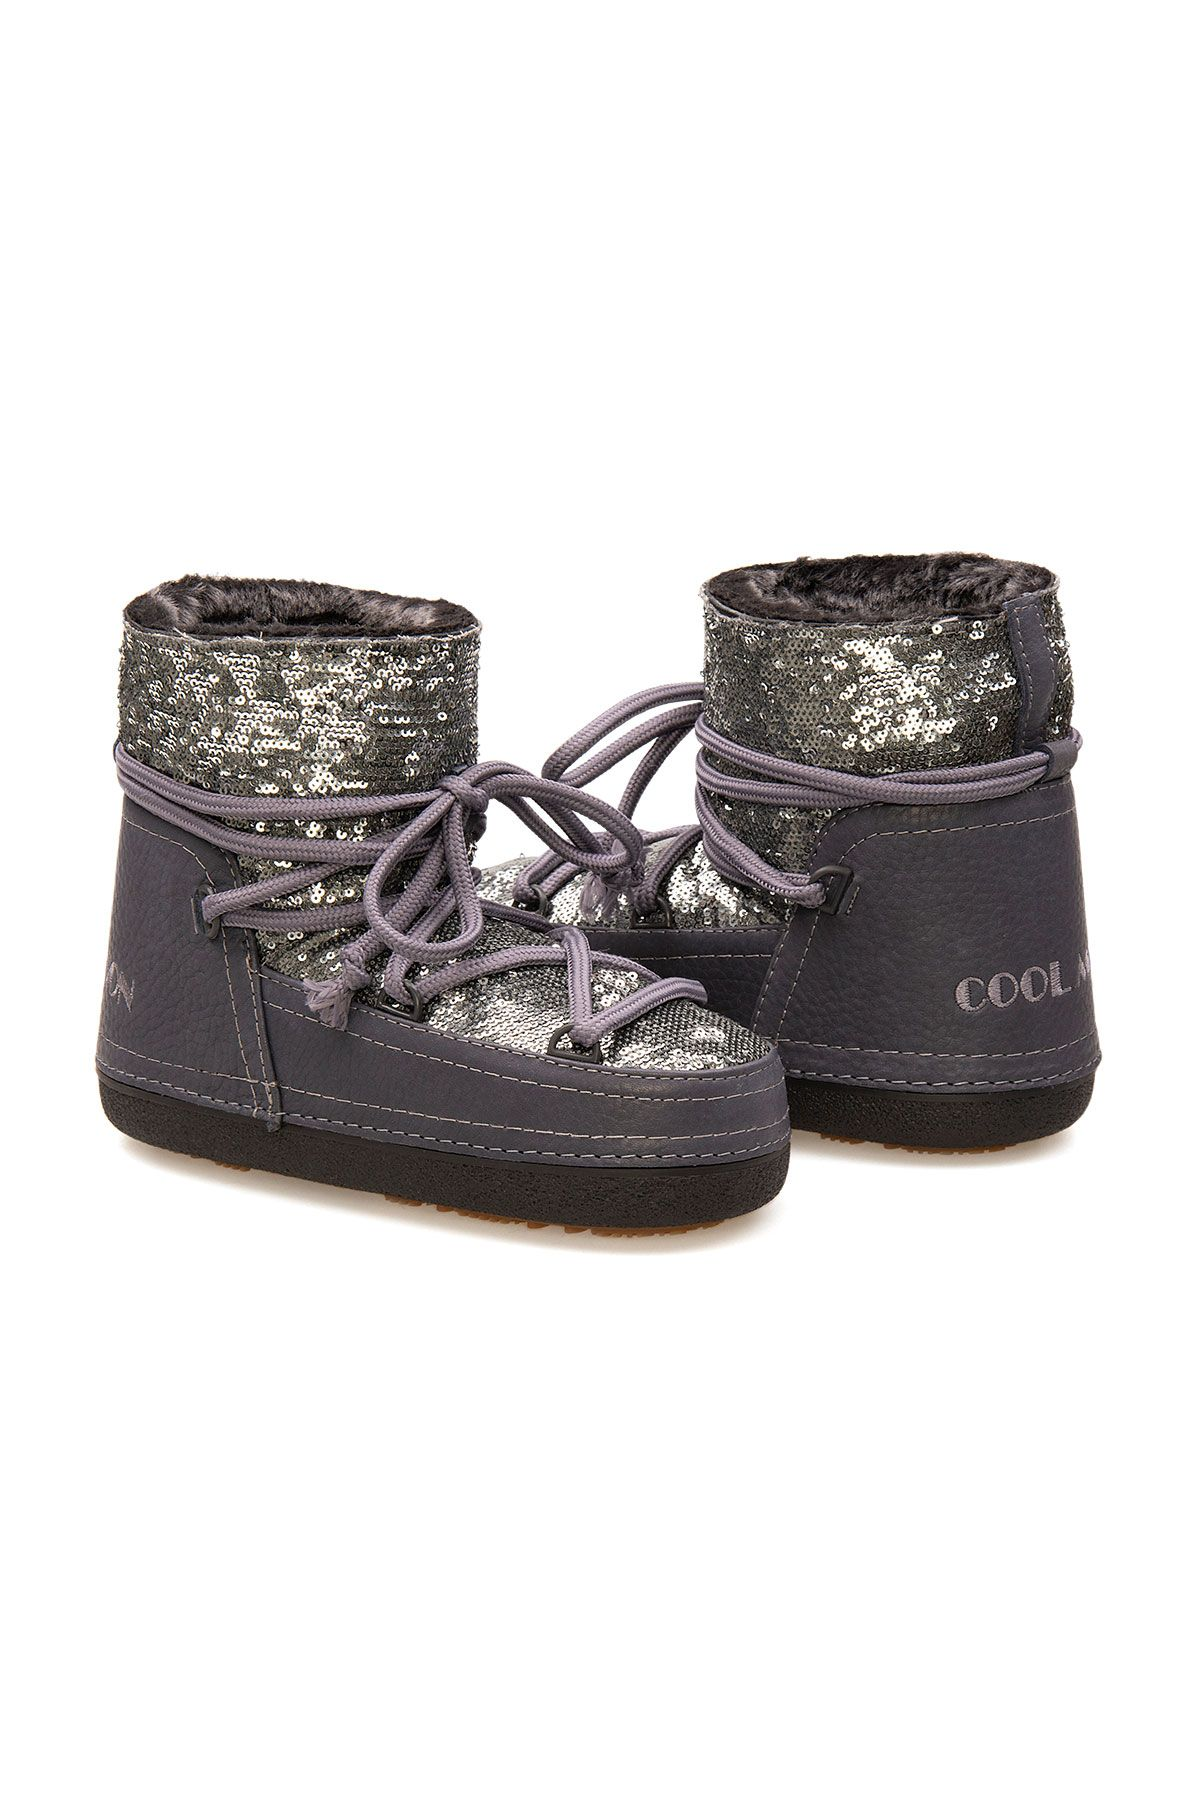 Cool Moon Sheepskin Women's Snow Boots With Sequin 251325 Gray